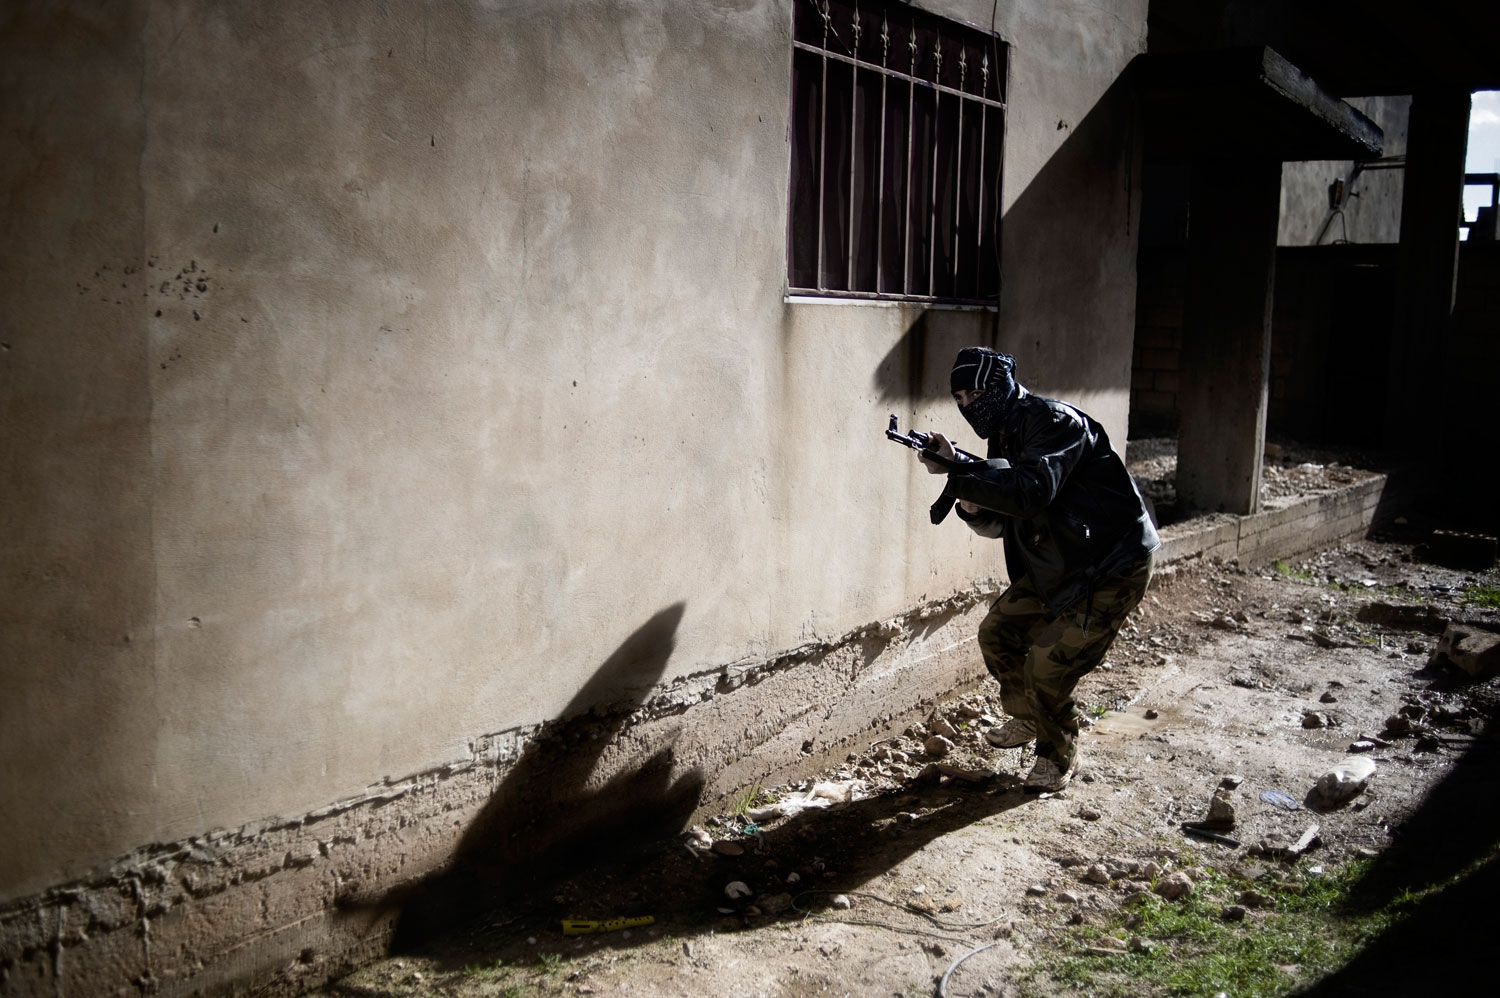 A member of the Free Syrian Army participates in an attack operation against the Syrian army in Al Qsair, a town of 40,000 inhabitants that is southwest of Homs. Jan. 27, 2012